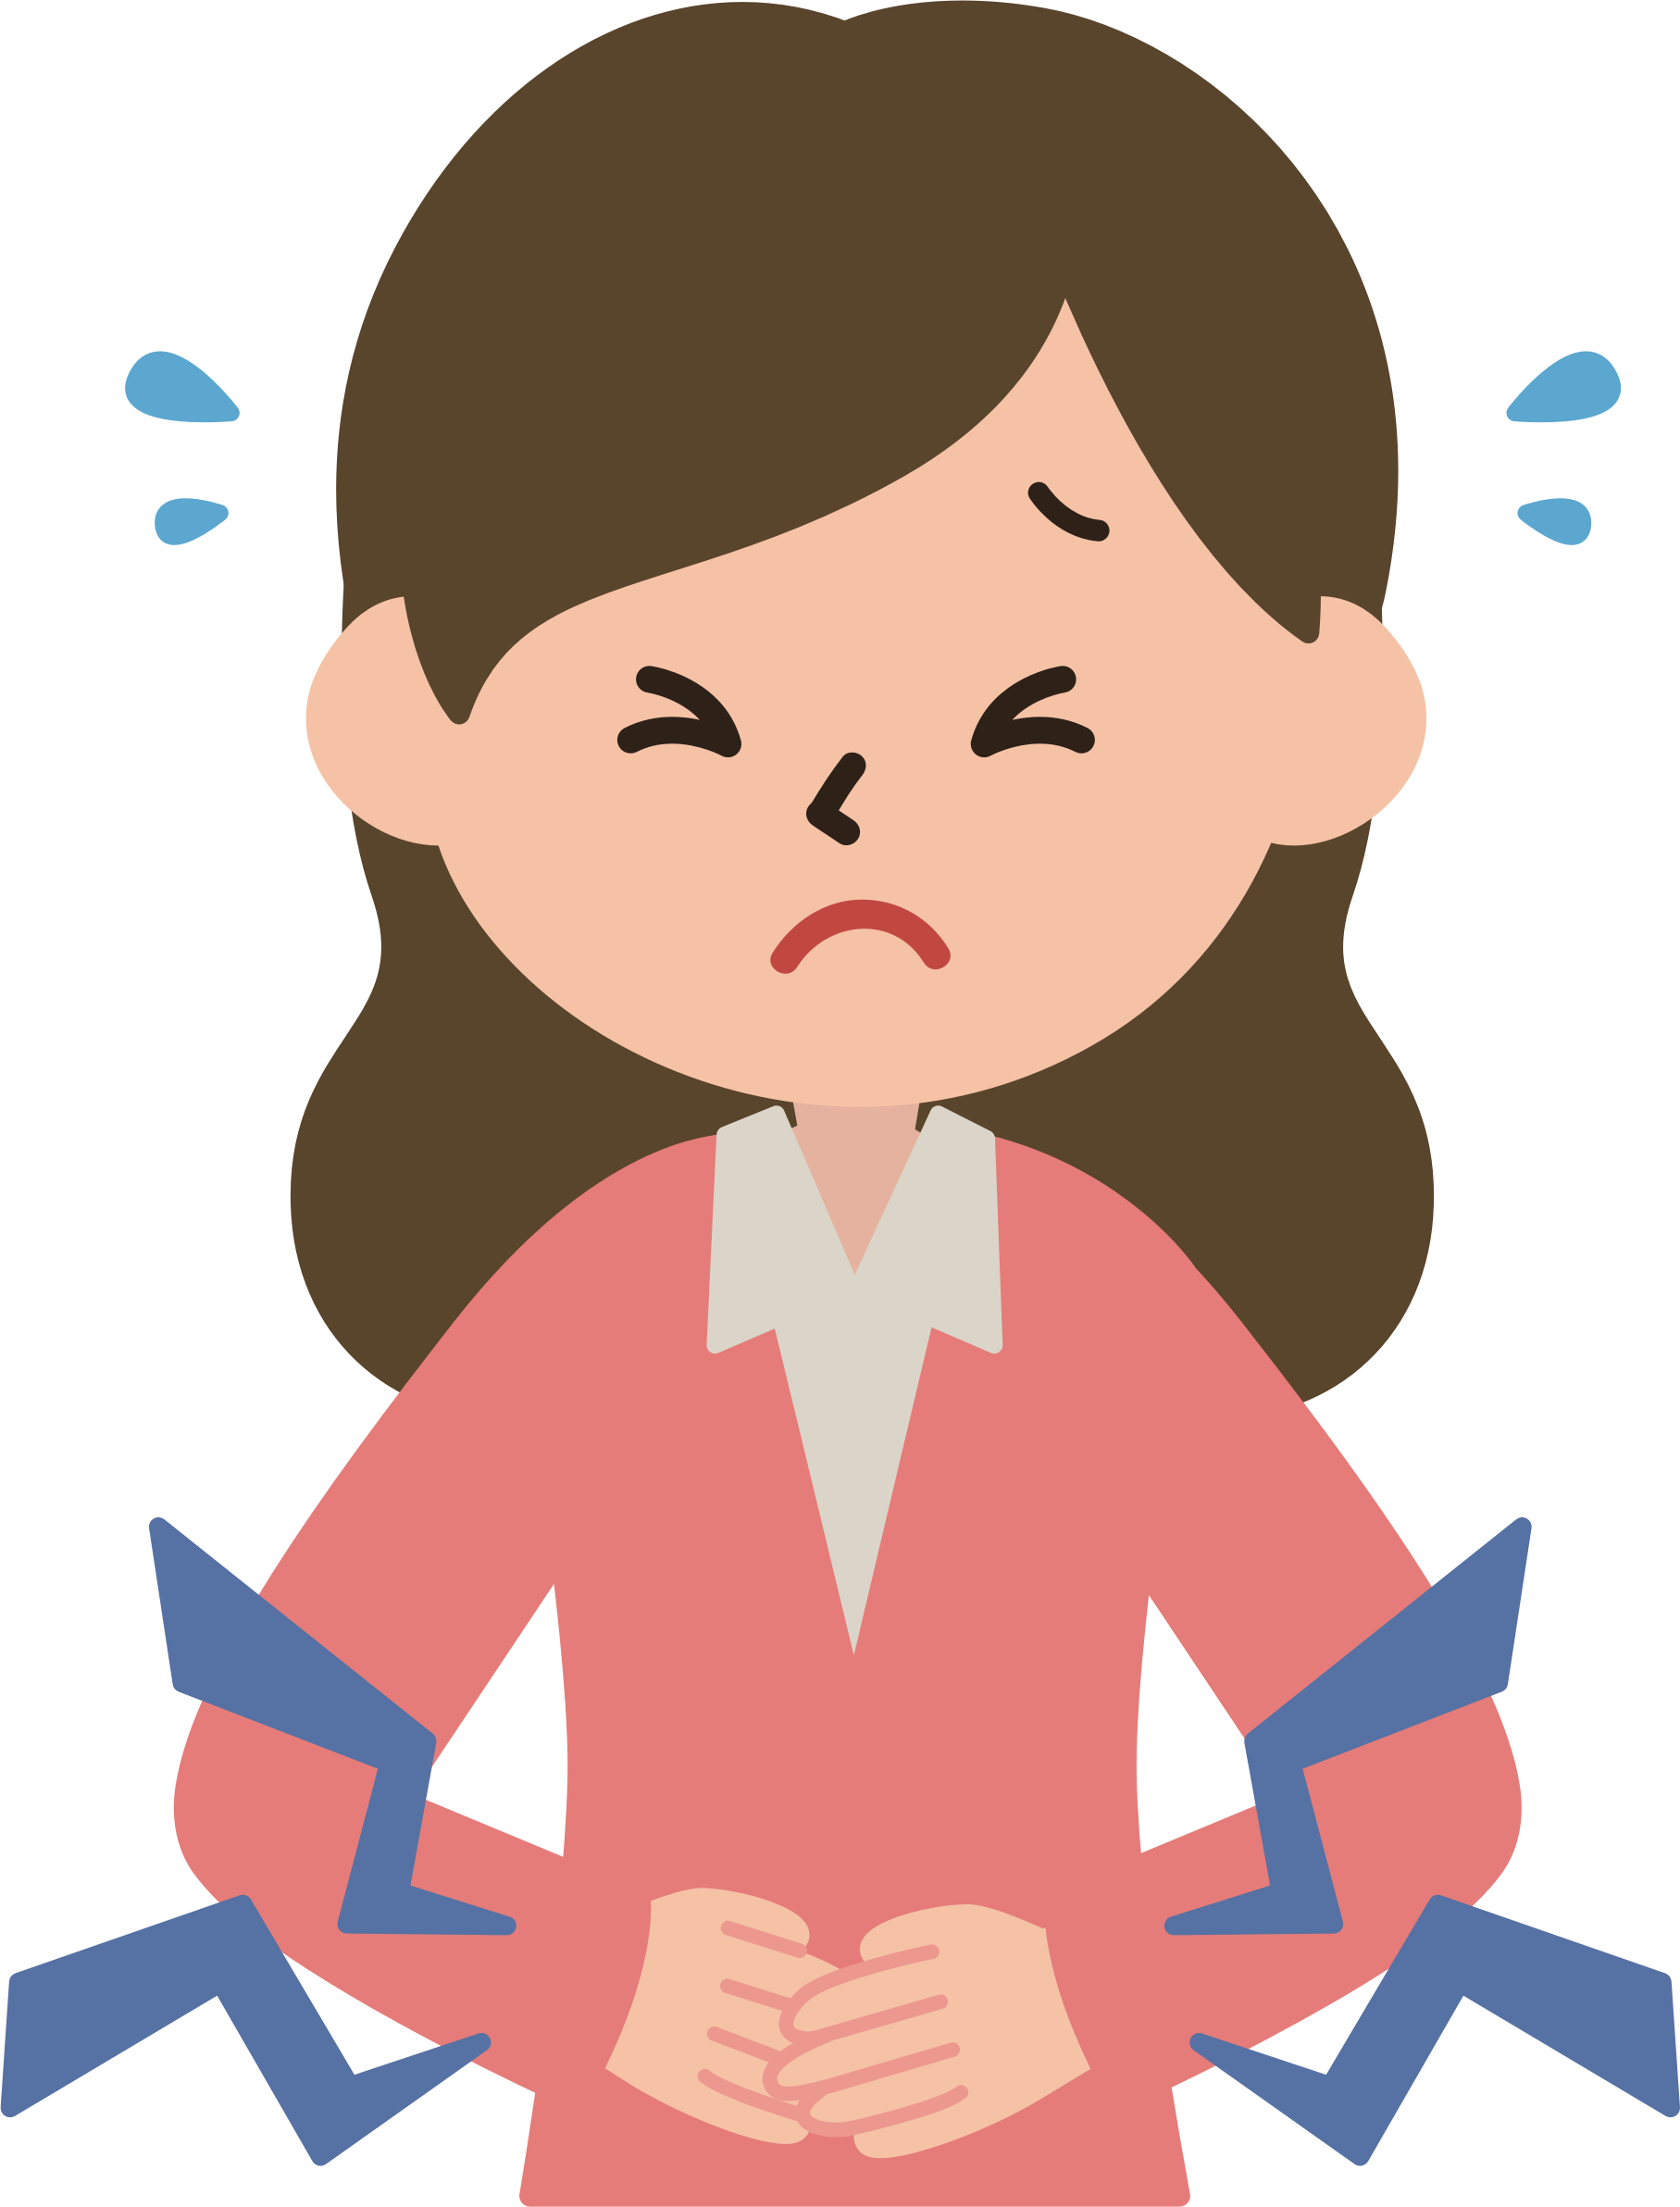 Pain big image png. Hungry clipart stomach hurt